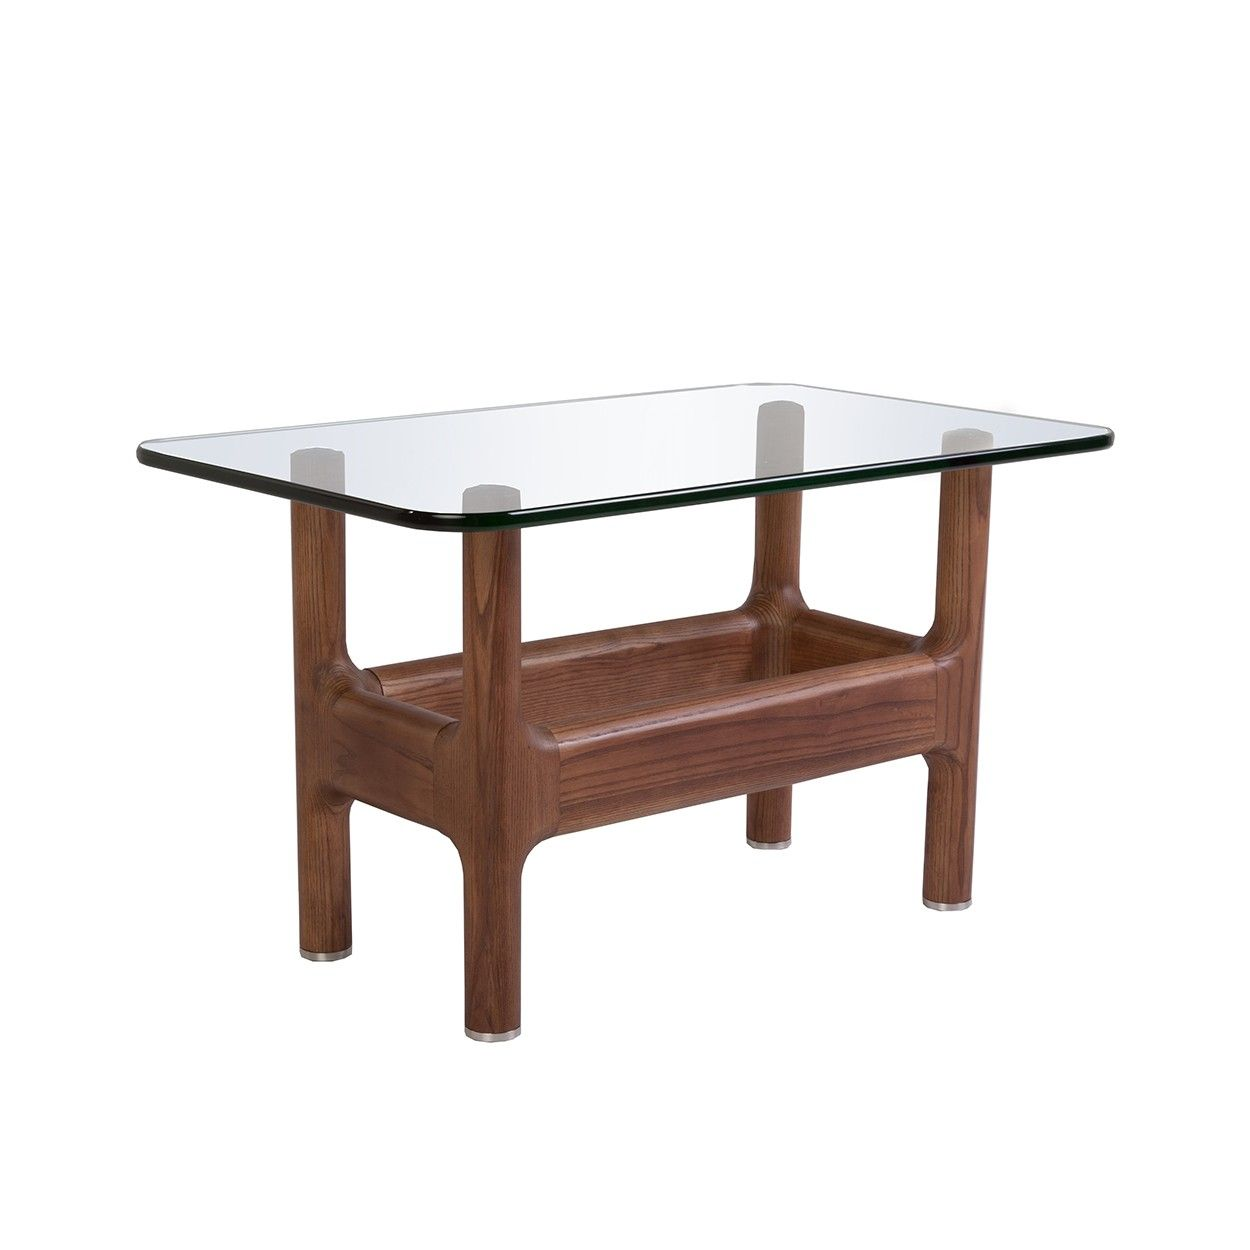 Sean Dix H Side Table Table Side Table Coffee Table [ 1250 x 1250 Pixel ]